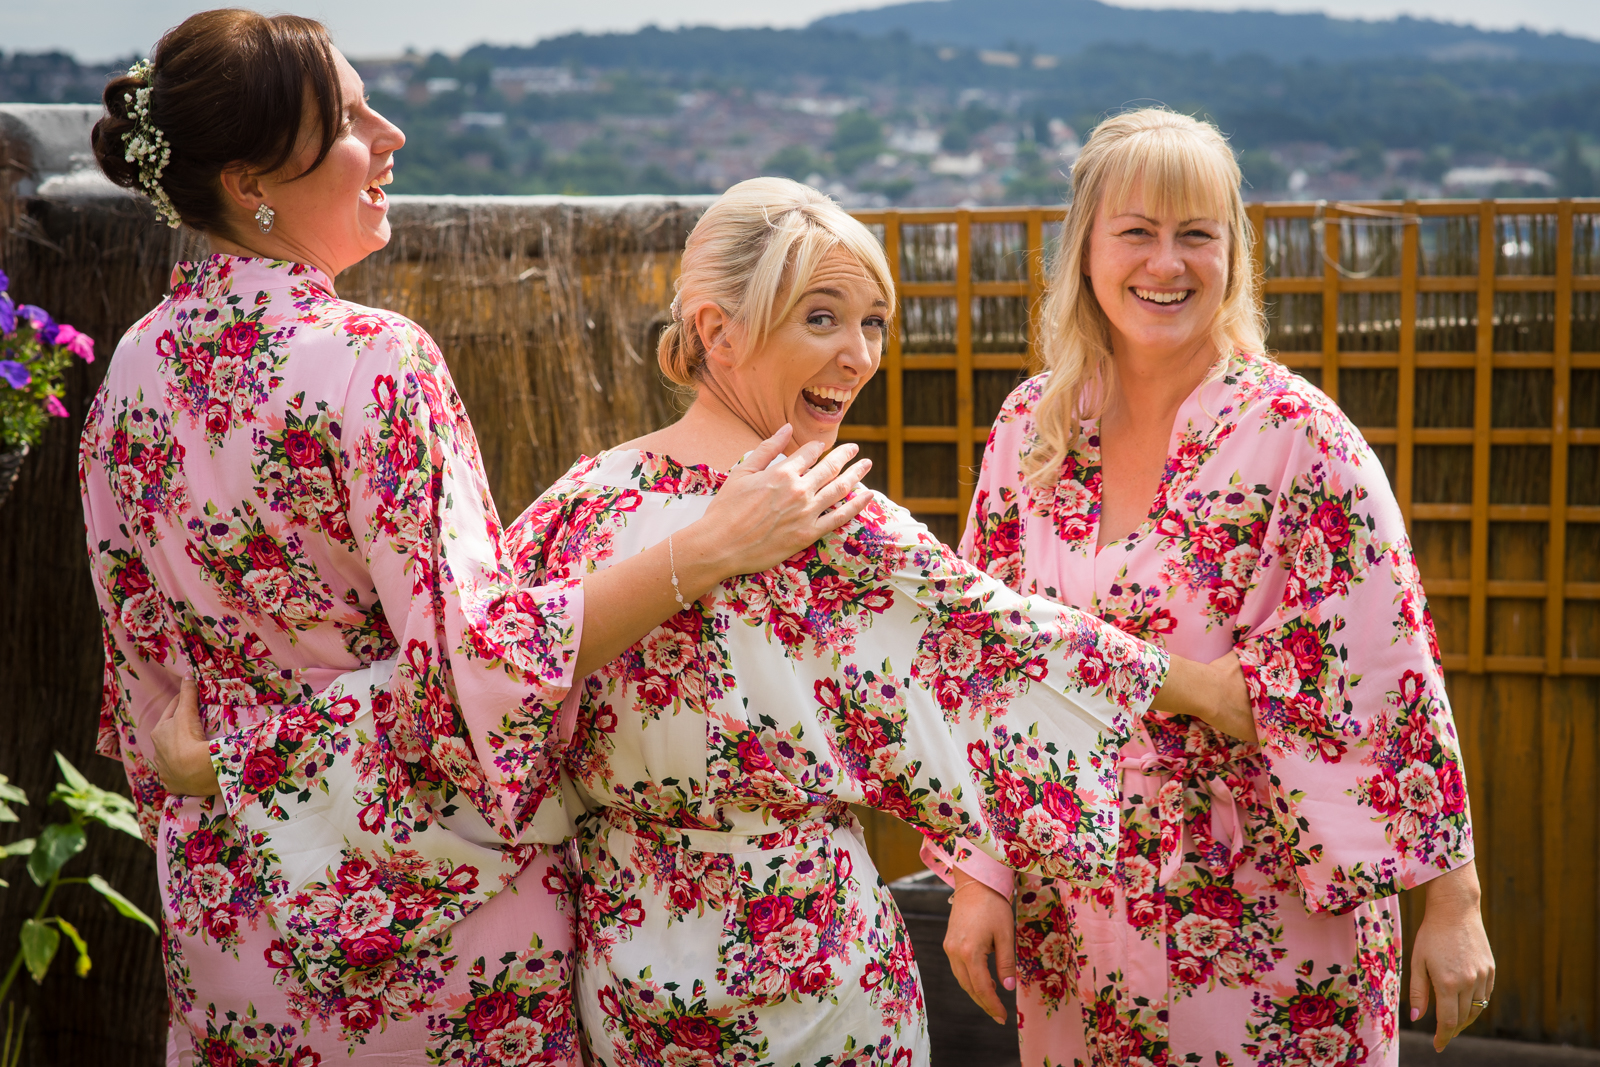 Bride and two bridesmaids in matching dressing gowns laughing